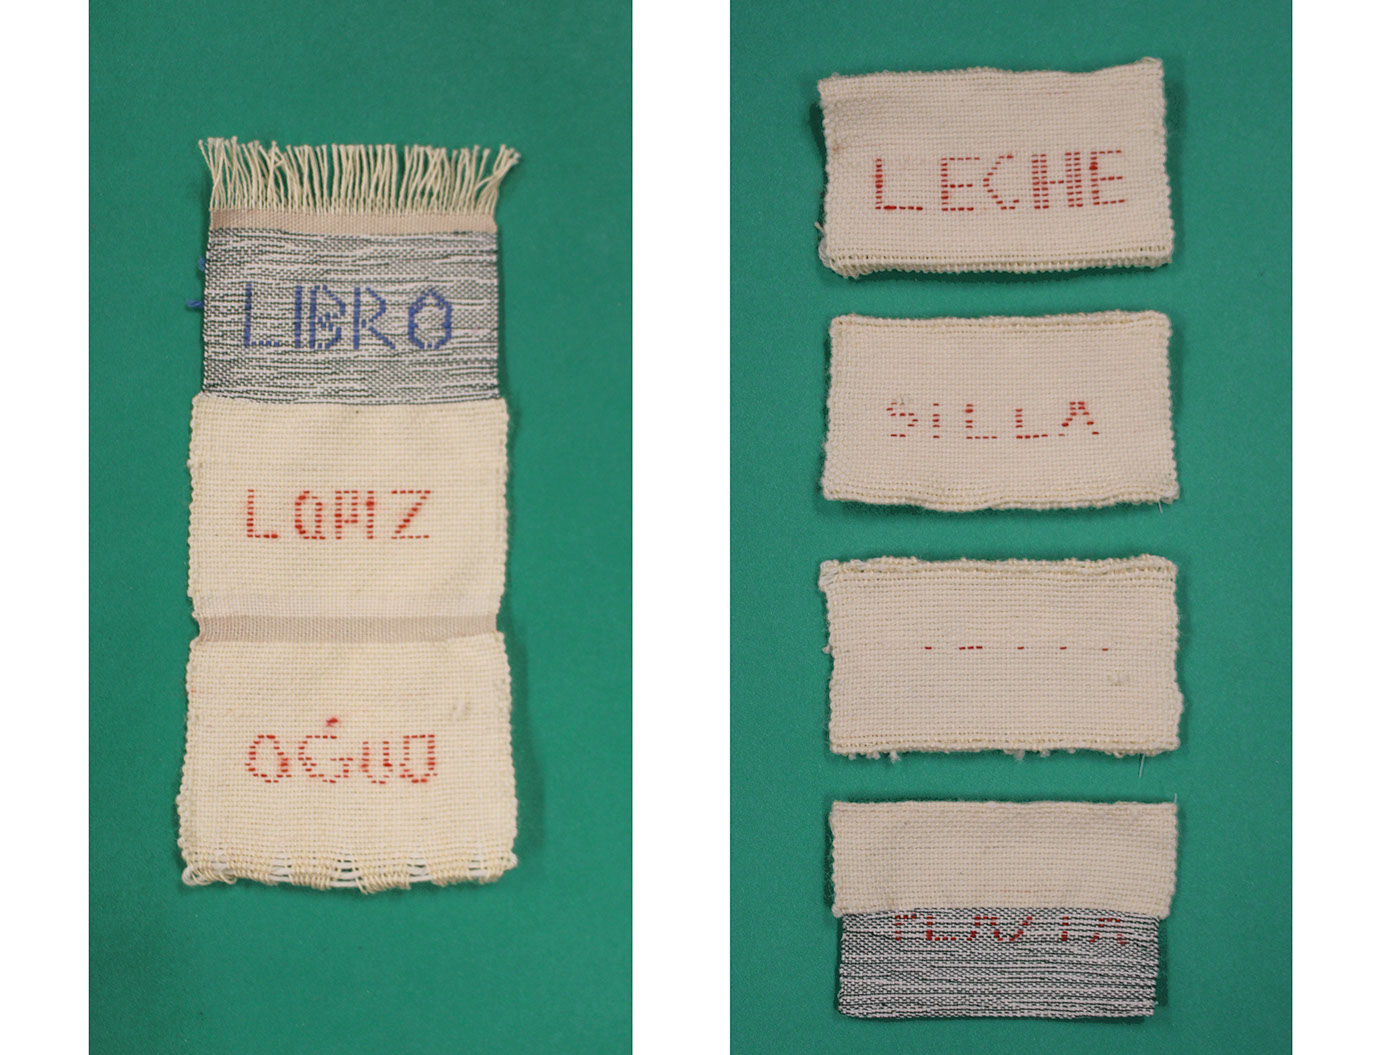 weaving,language,spanish,Bilingualism